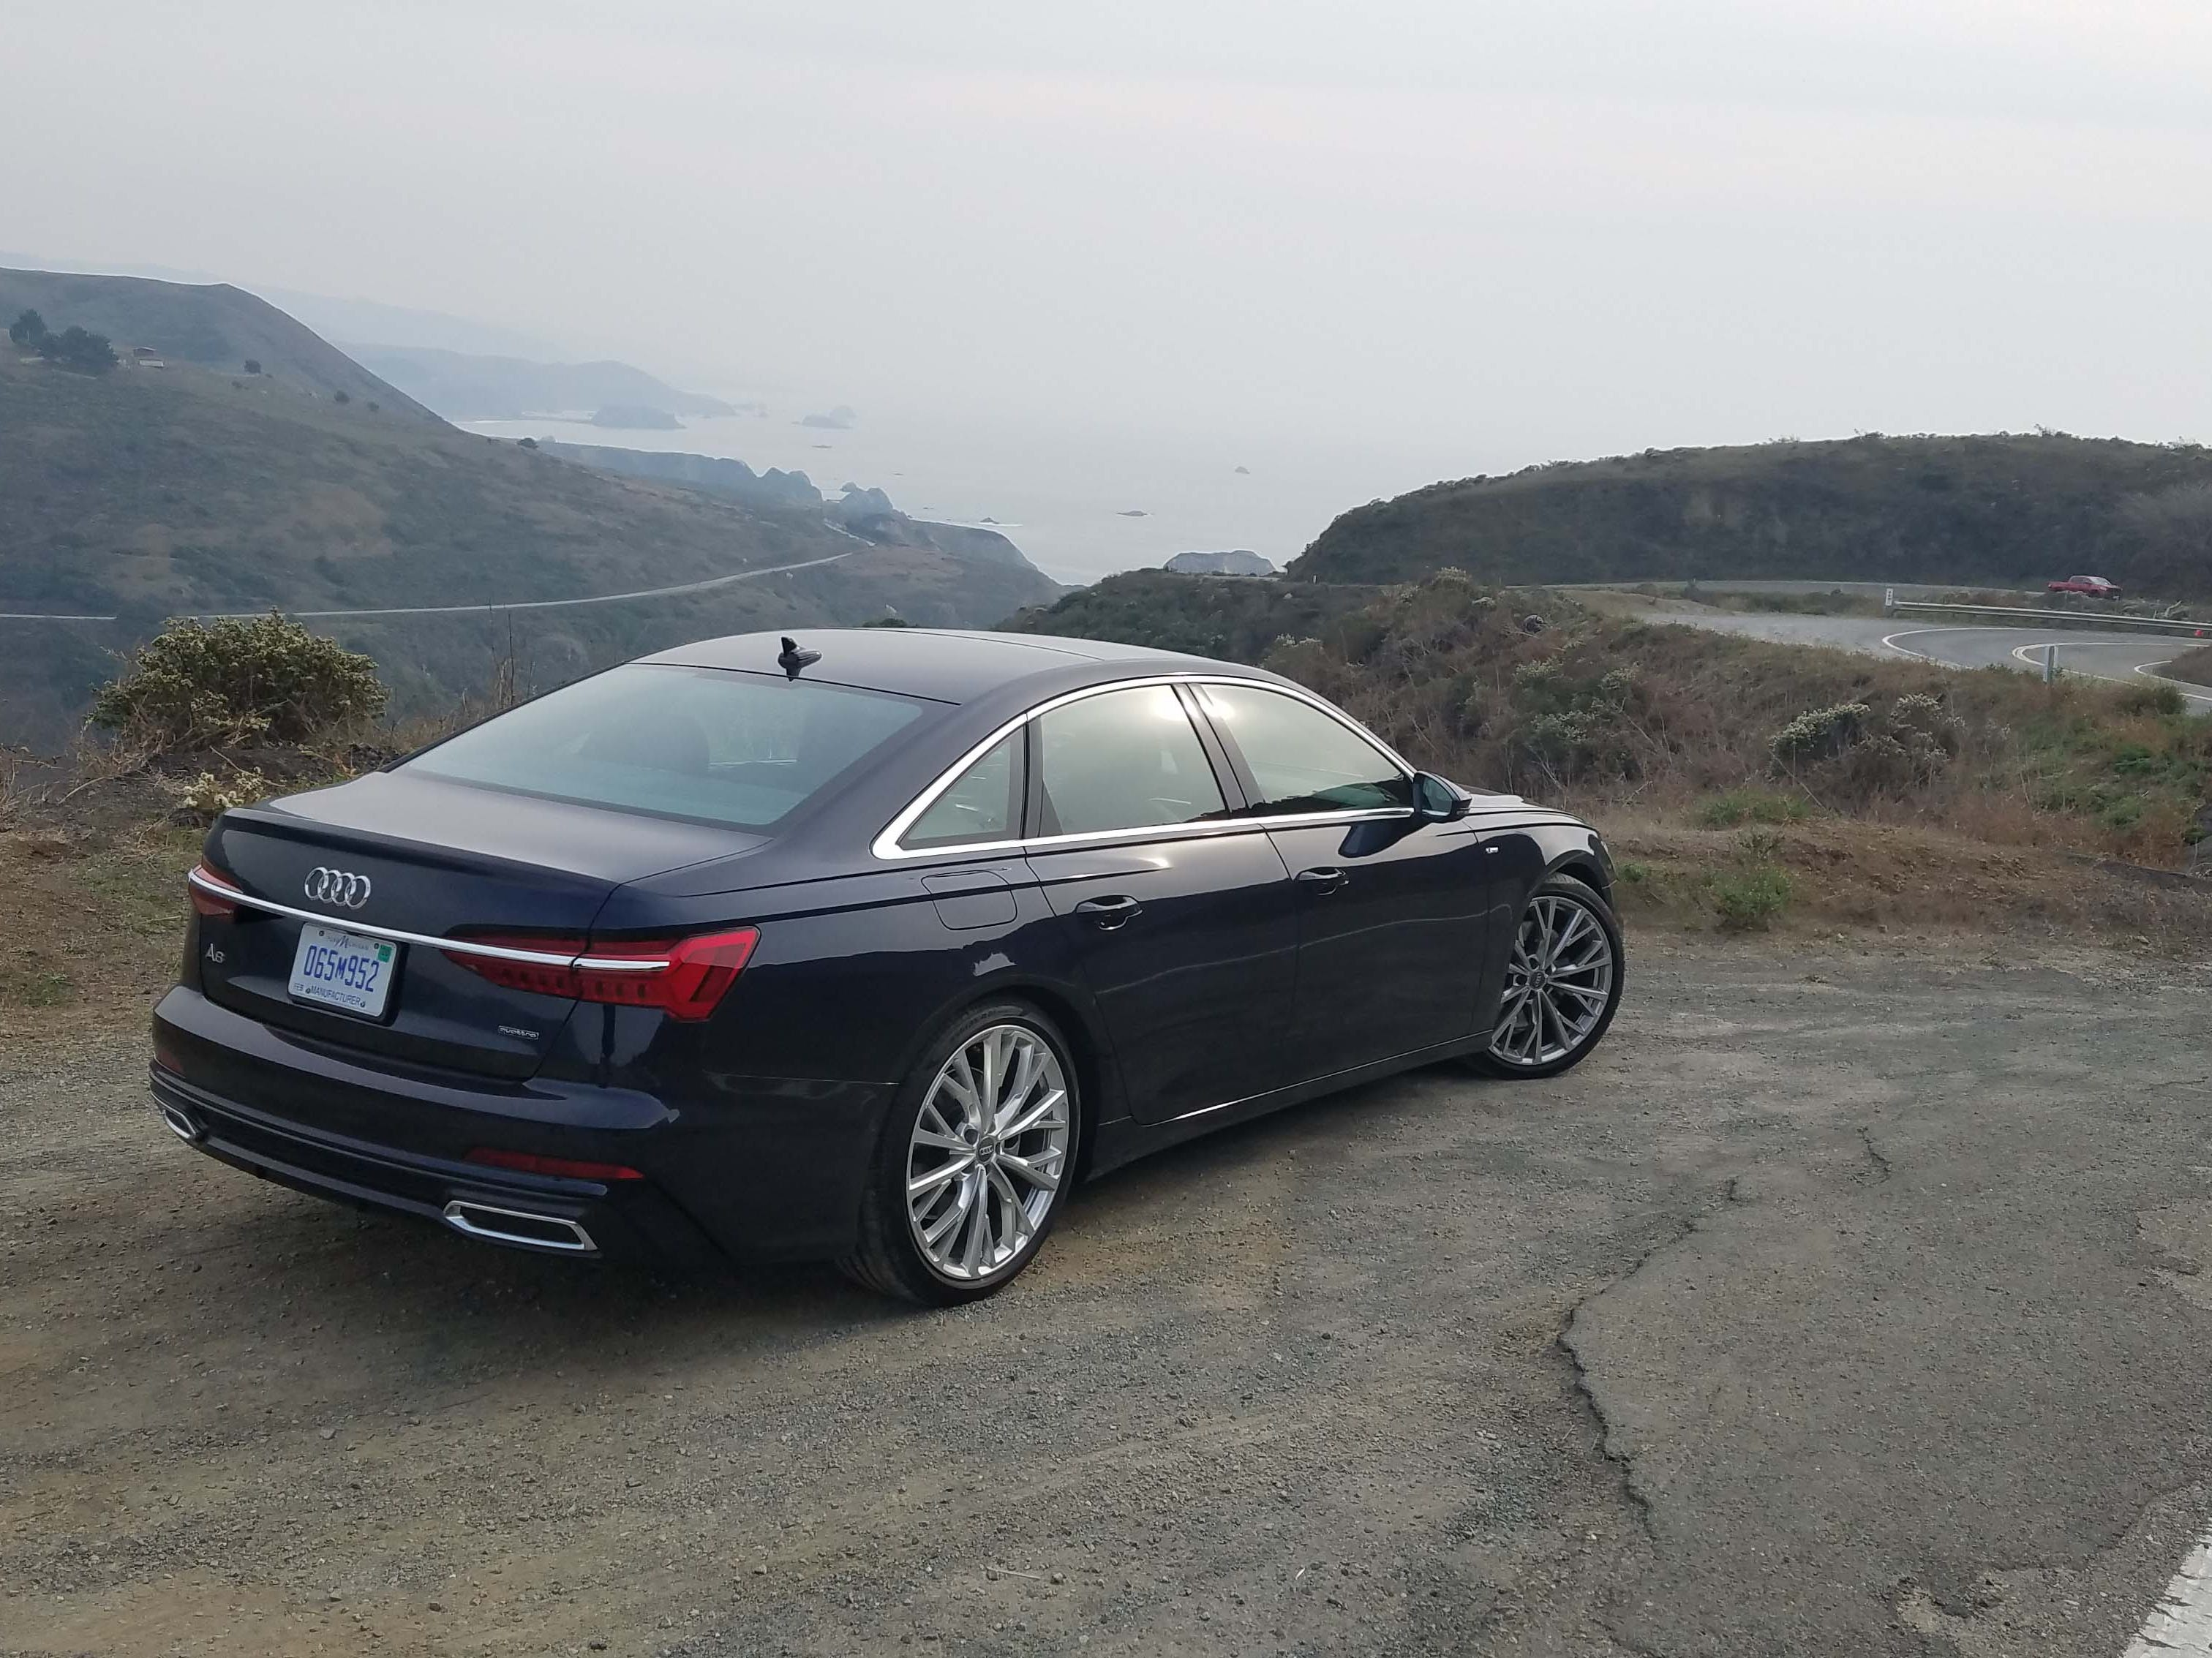 The Audi A6 shows off its conventional sedan caboose, while its A7 sibling gets a sporty hatchback. Both cars are surprisingly nimble on the spaghetti-noodle Pacific Coastal Highway north of San Francisco.